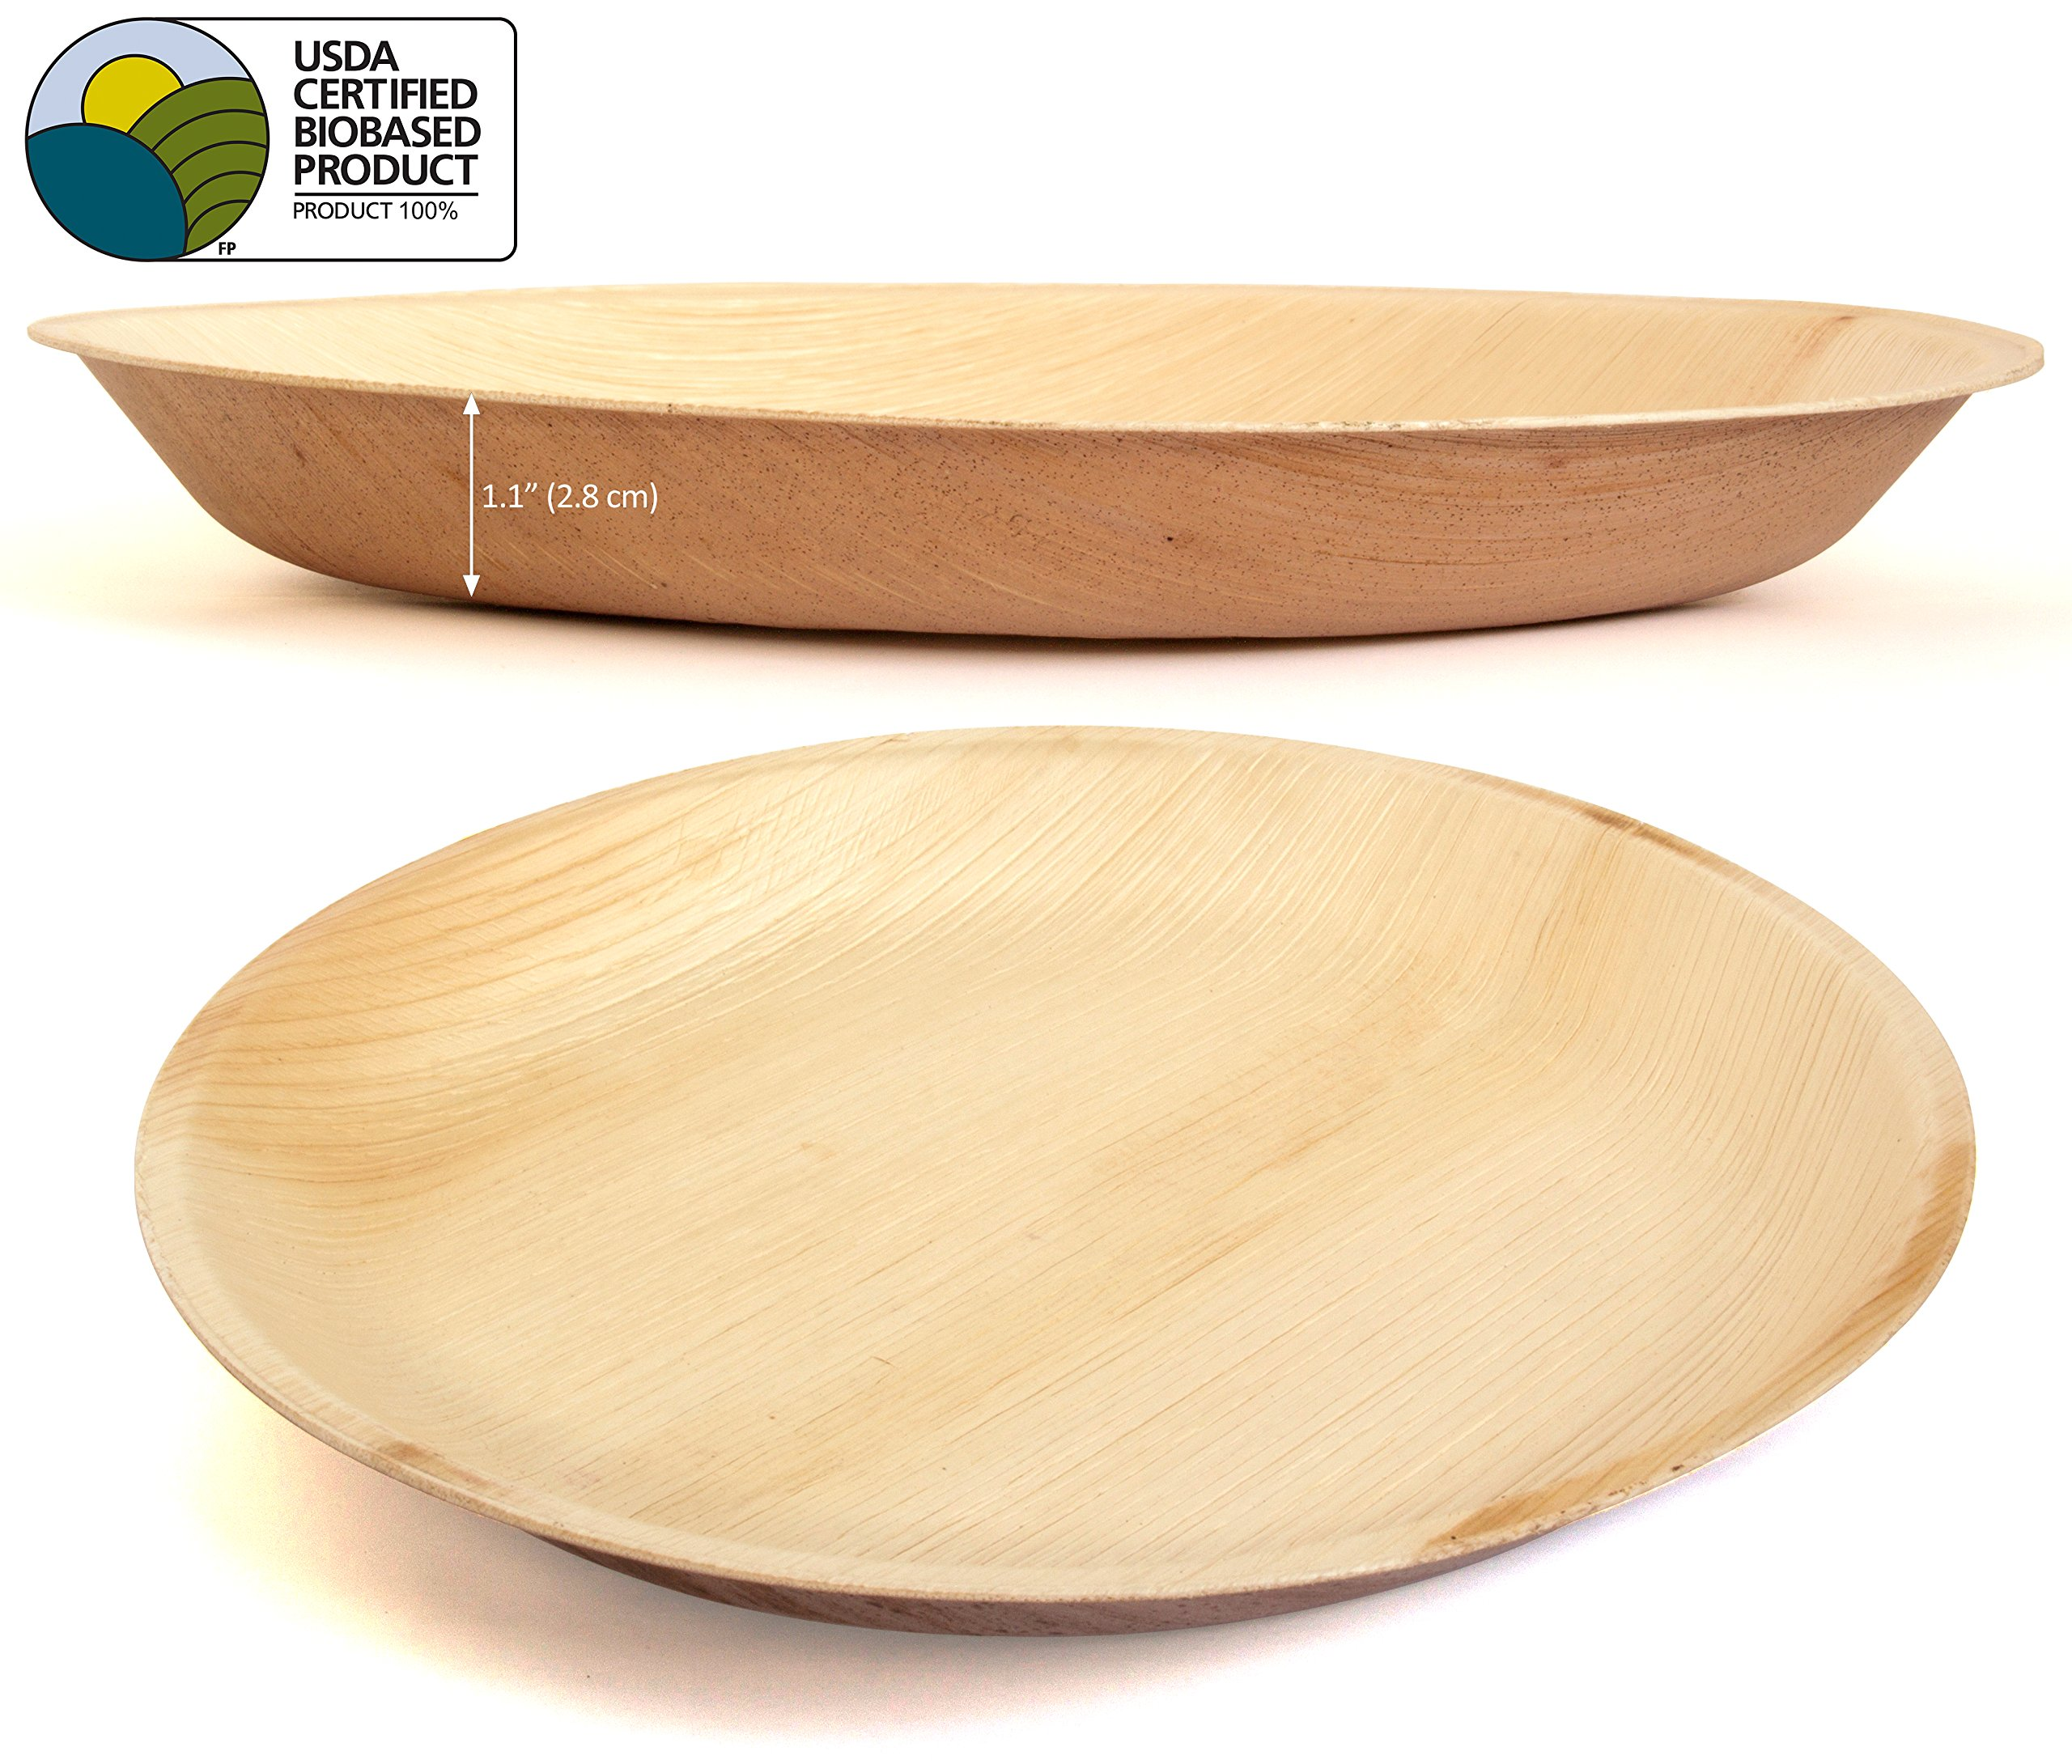 Leafily Palm Leaf Plates - 10 inch Round - Heavy Duty - Elegant - 100% Compostable - Better than Bamboo or Wood - Disposable - Biodegradable - Premium Party Plates - USDA Certified - 22 Count